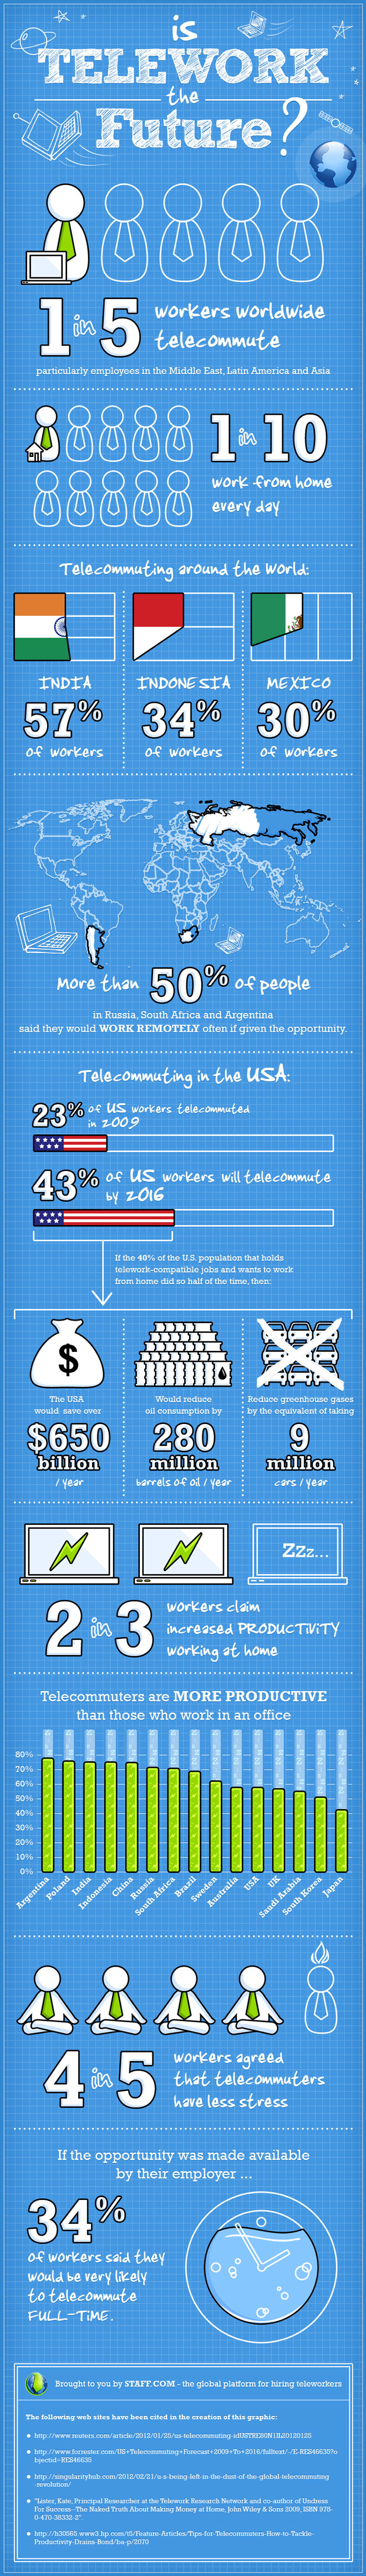 Is-Telework-the-Future-of-Work-Infographic